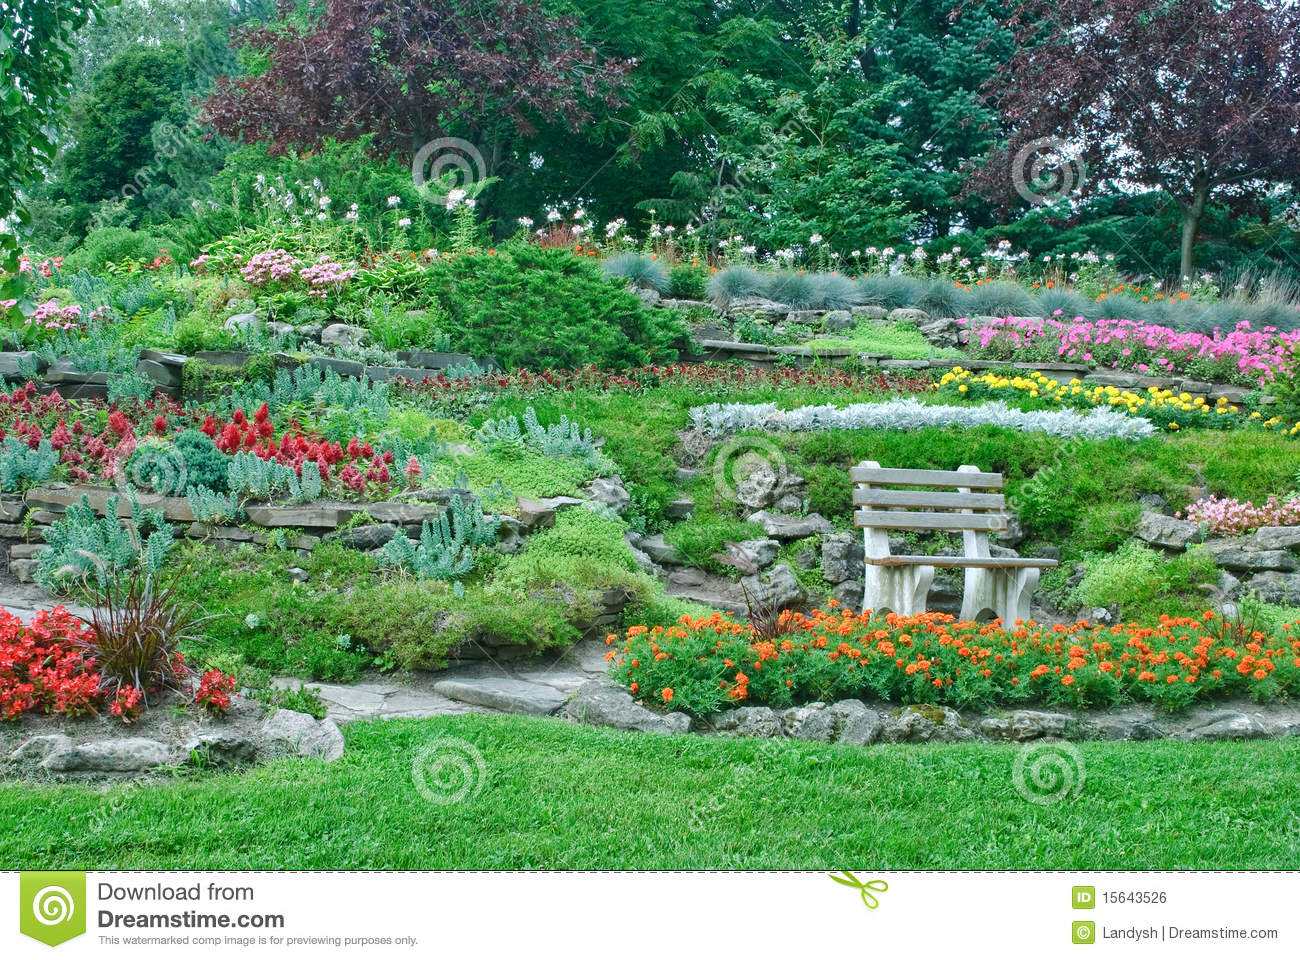 Garden With Flowerbeds Plants In A Park Stock Photo